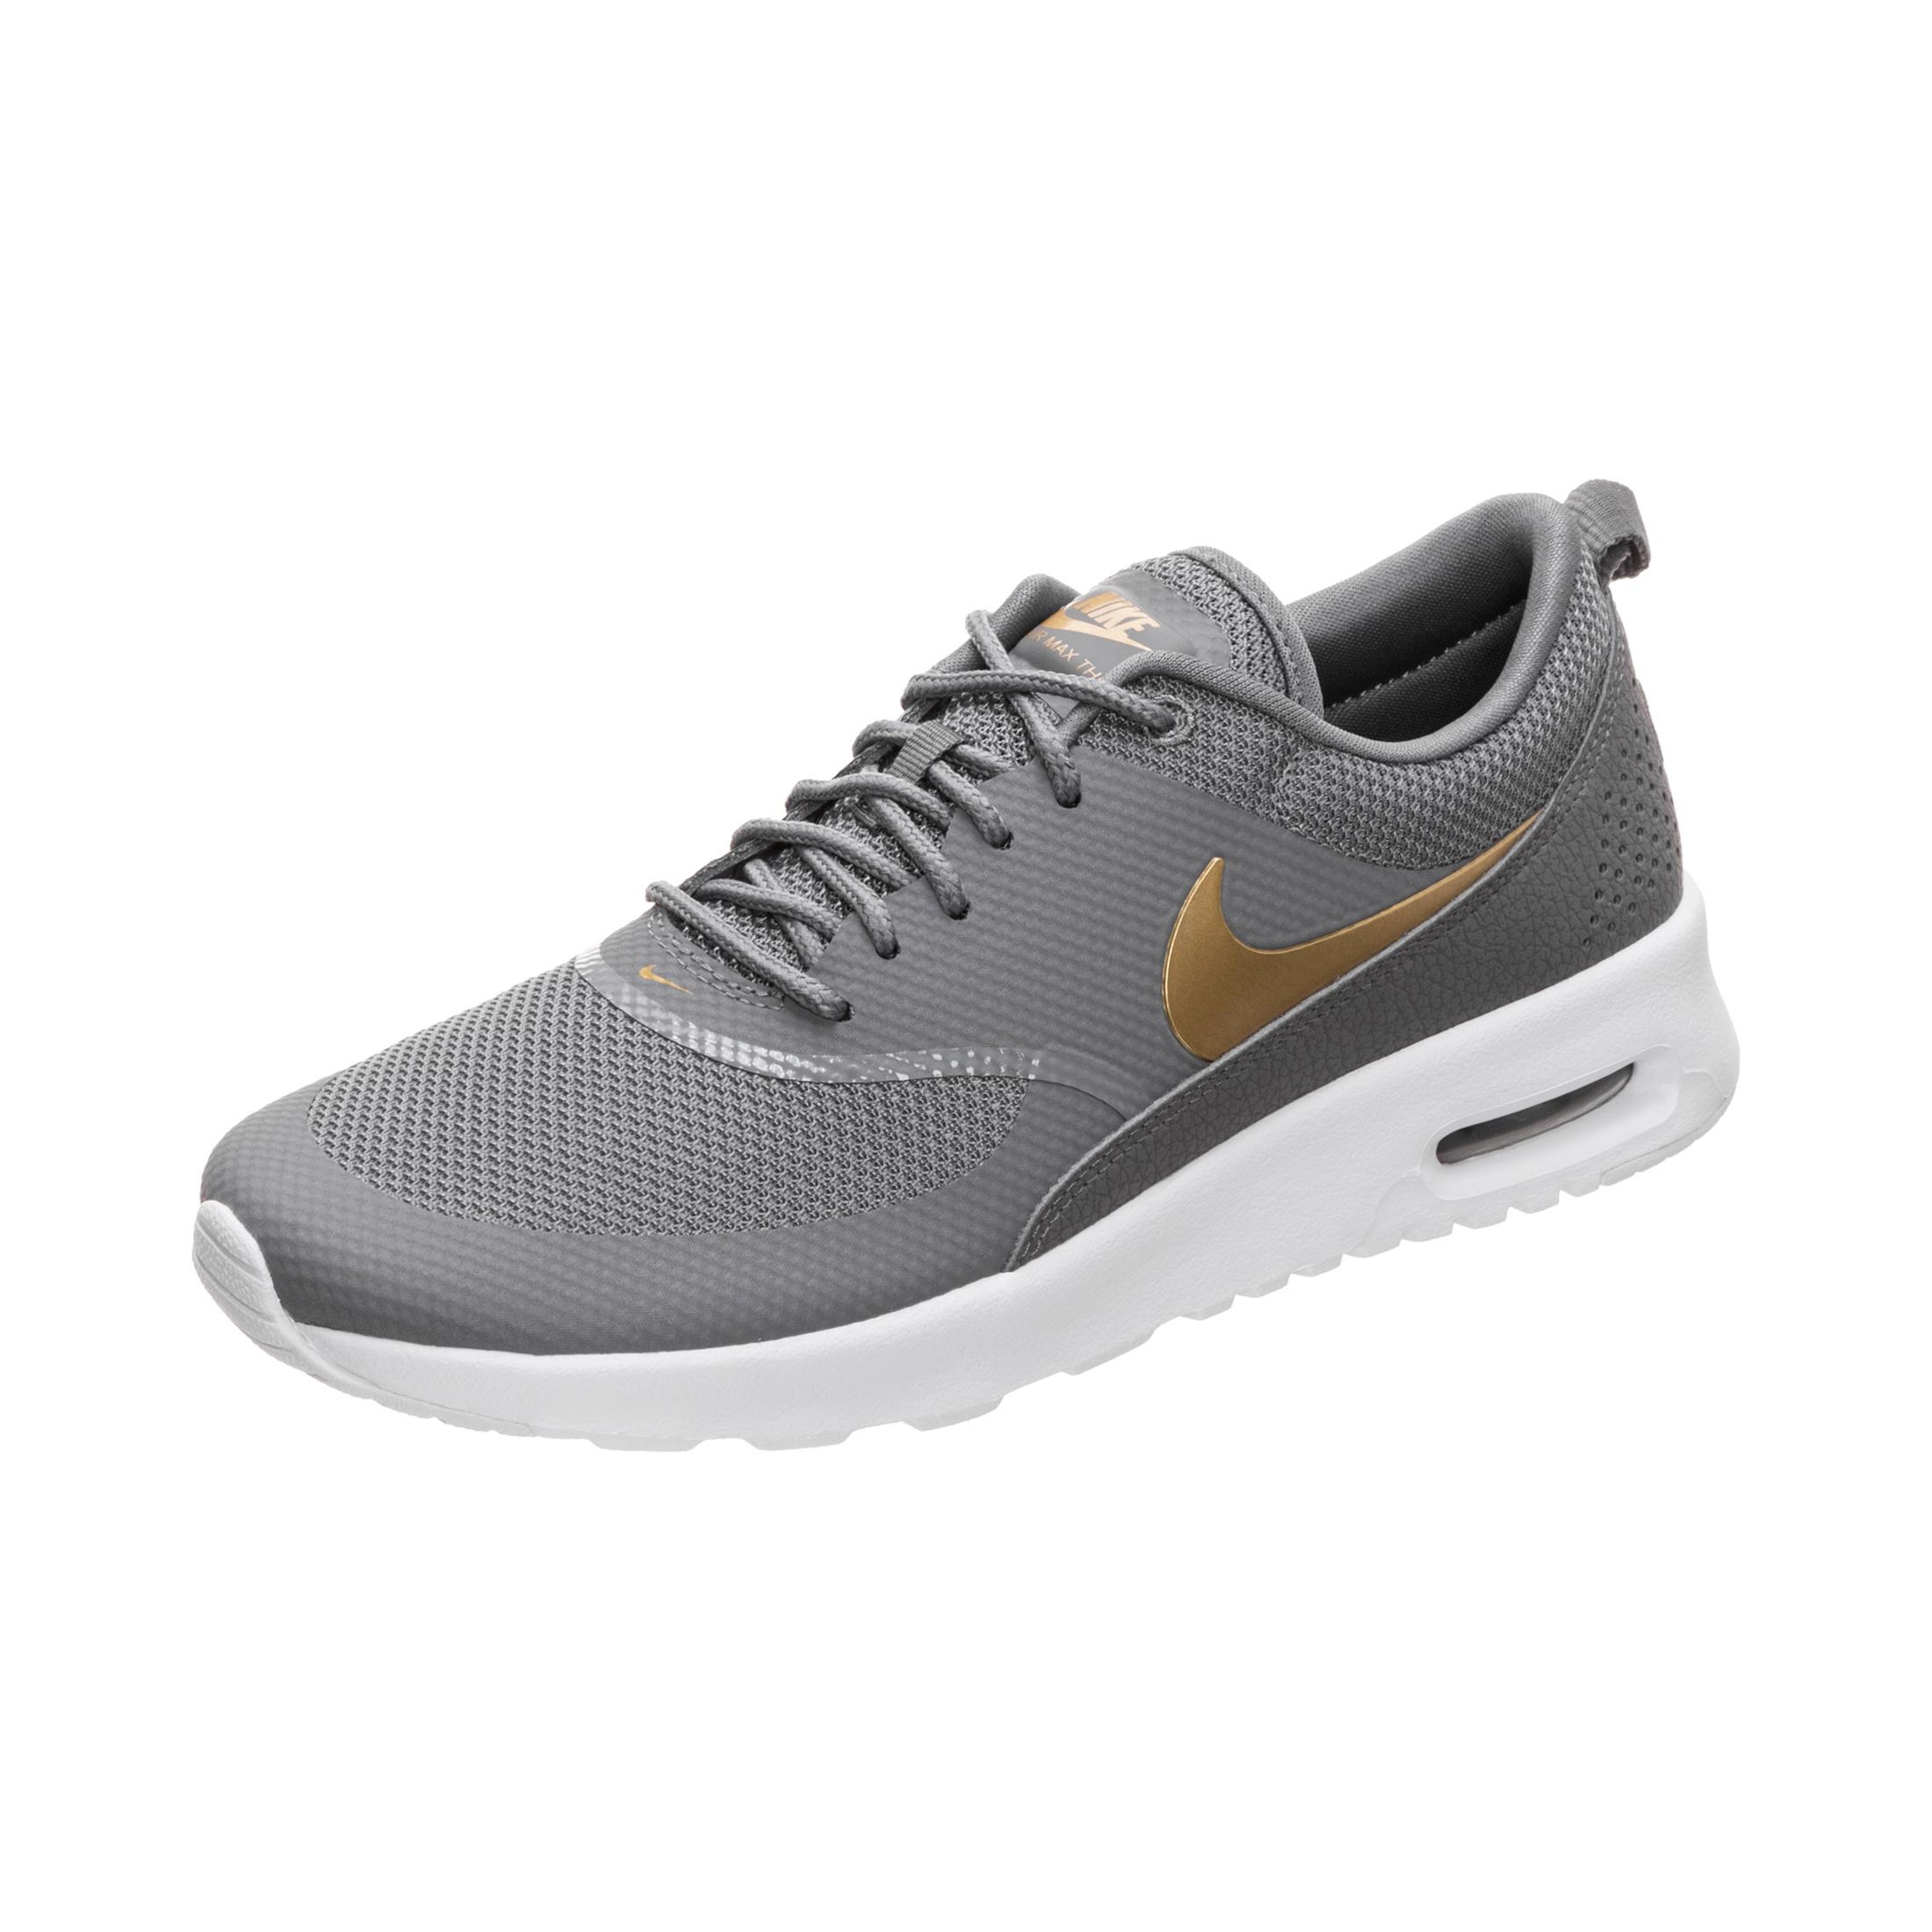 timeless design 4f2a3 7d1a4 hot nike air max thea damänner grau and weiß 2cd73 618dd